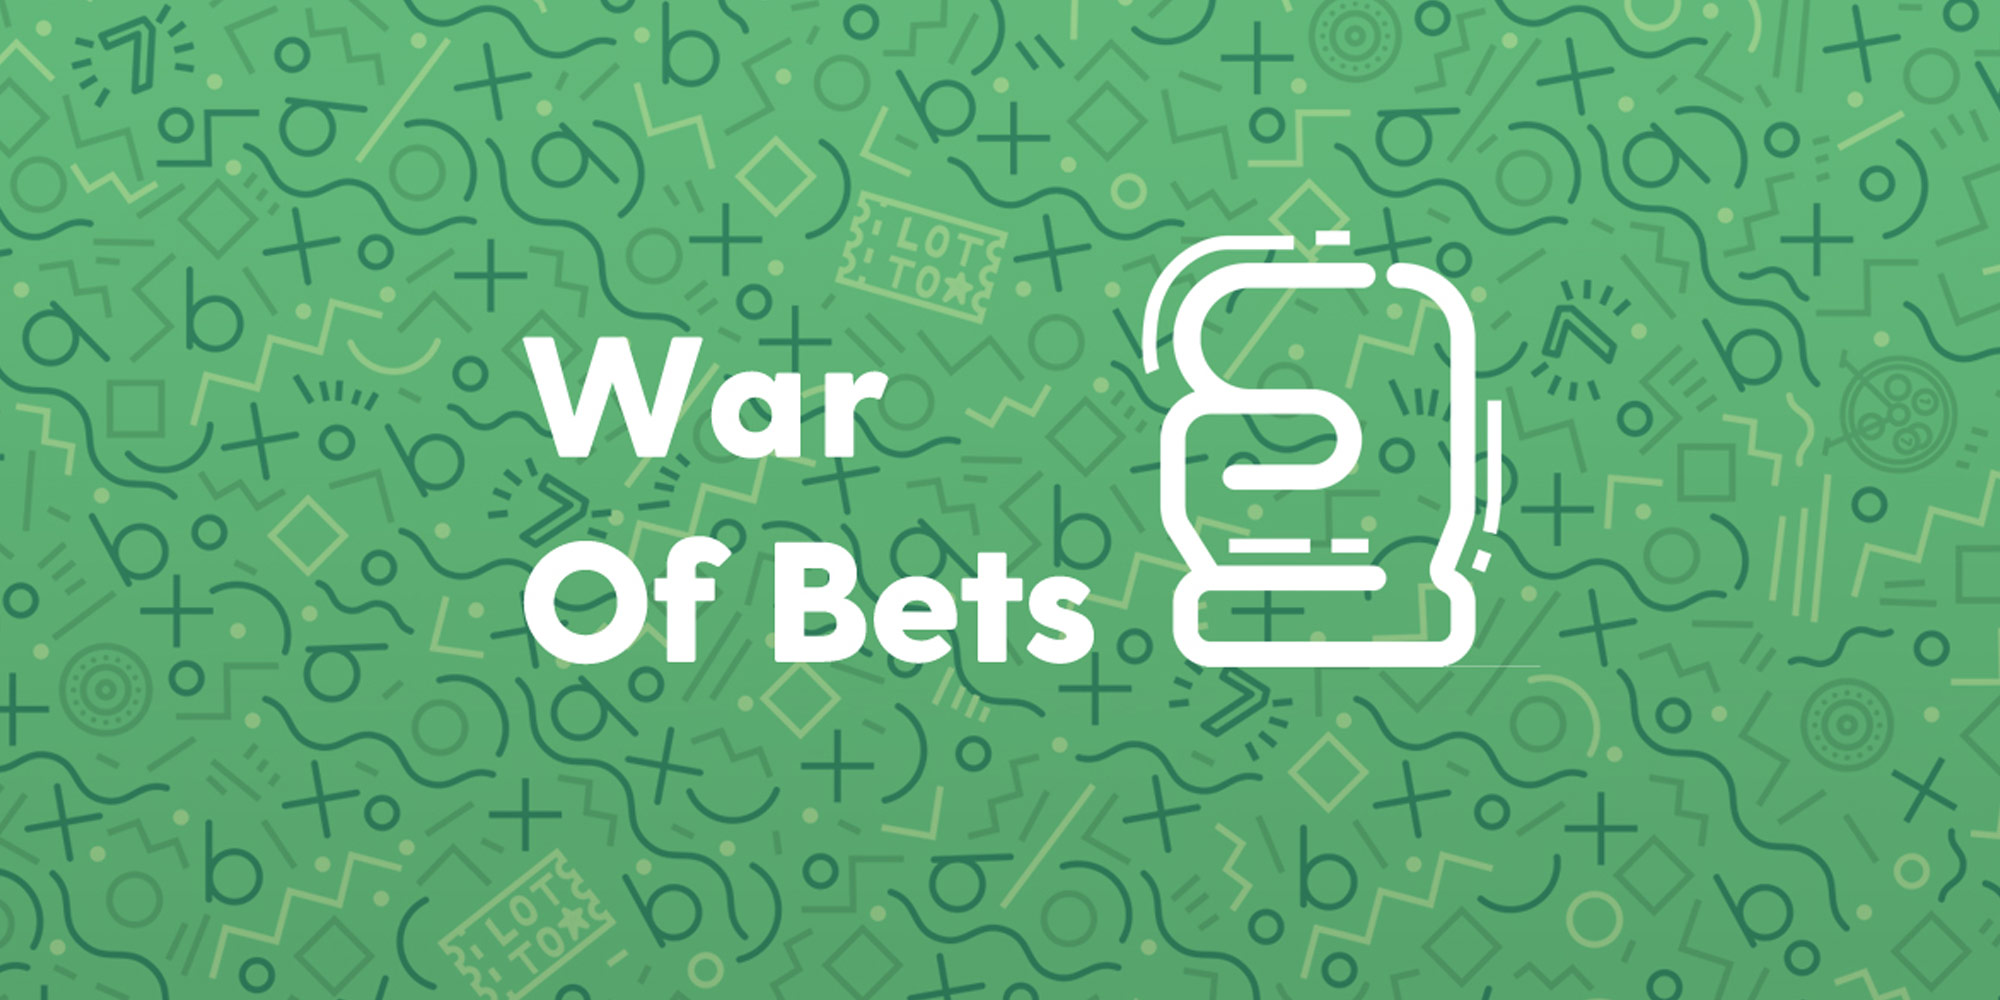 War of Bets: How to play